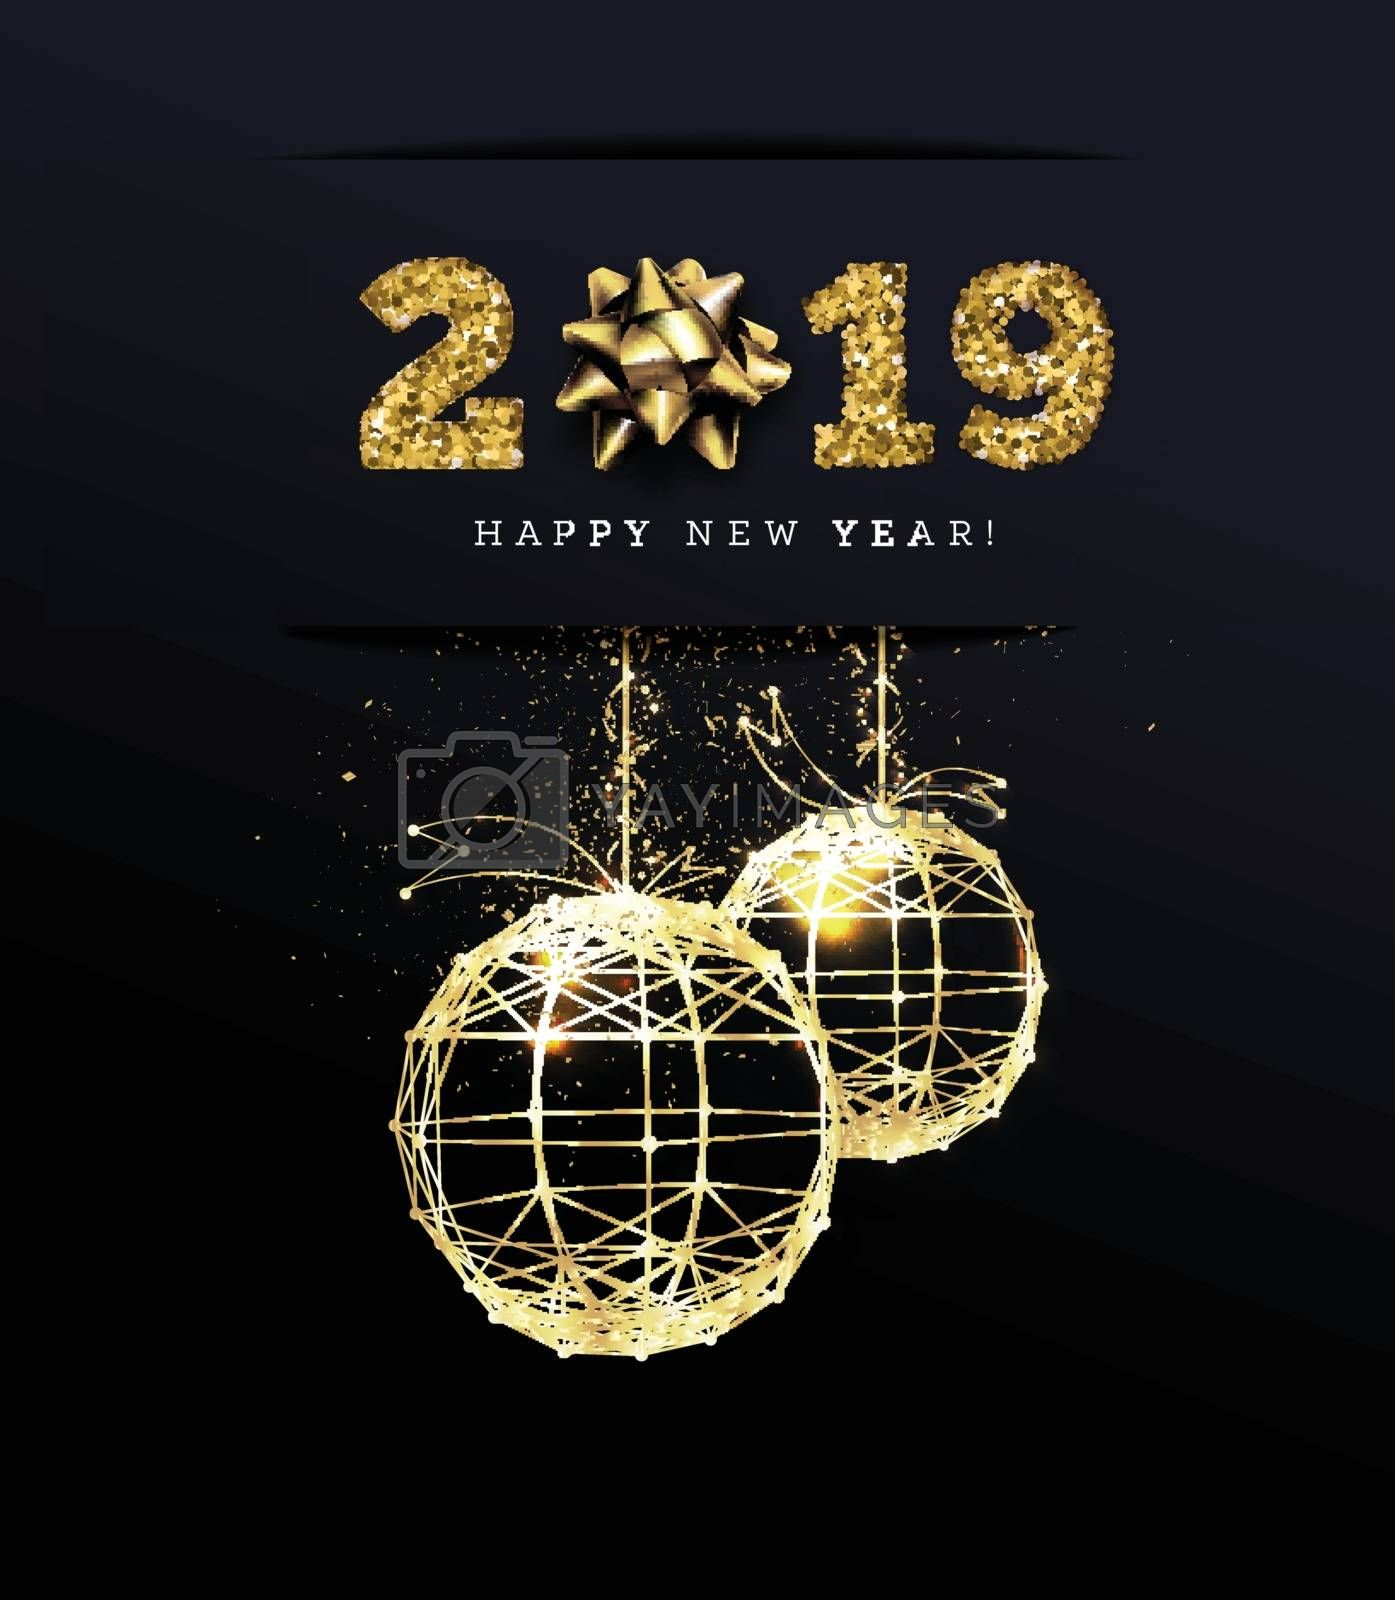 Congratulations on the 2019 happy new year. Holiday Gifts. Vector illustration with golden ribbons and christmas balls